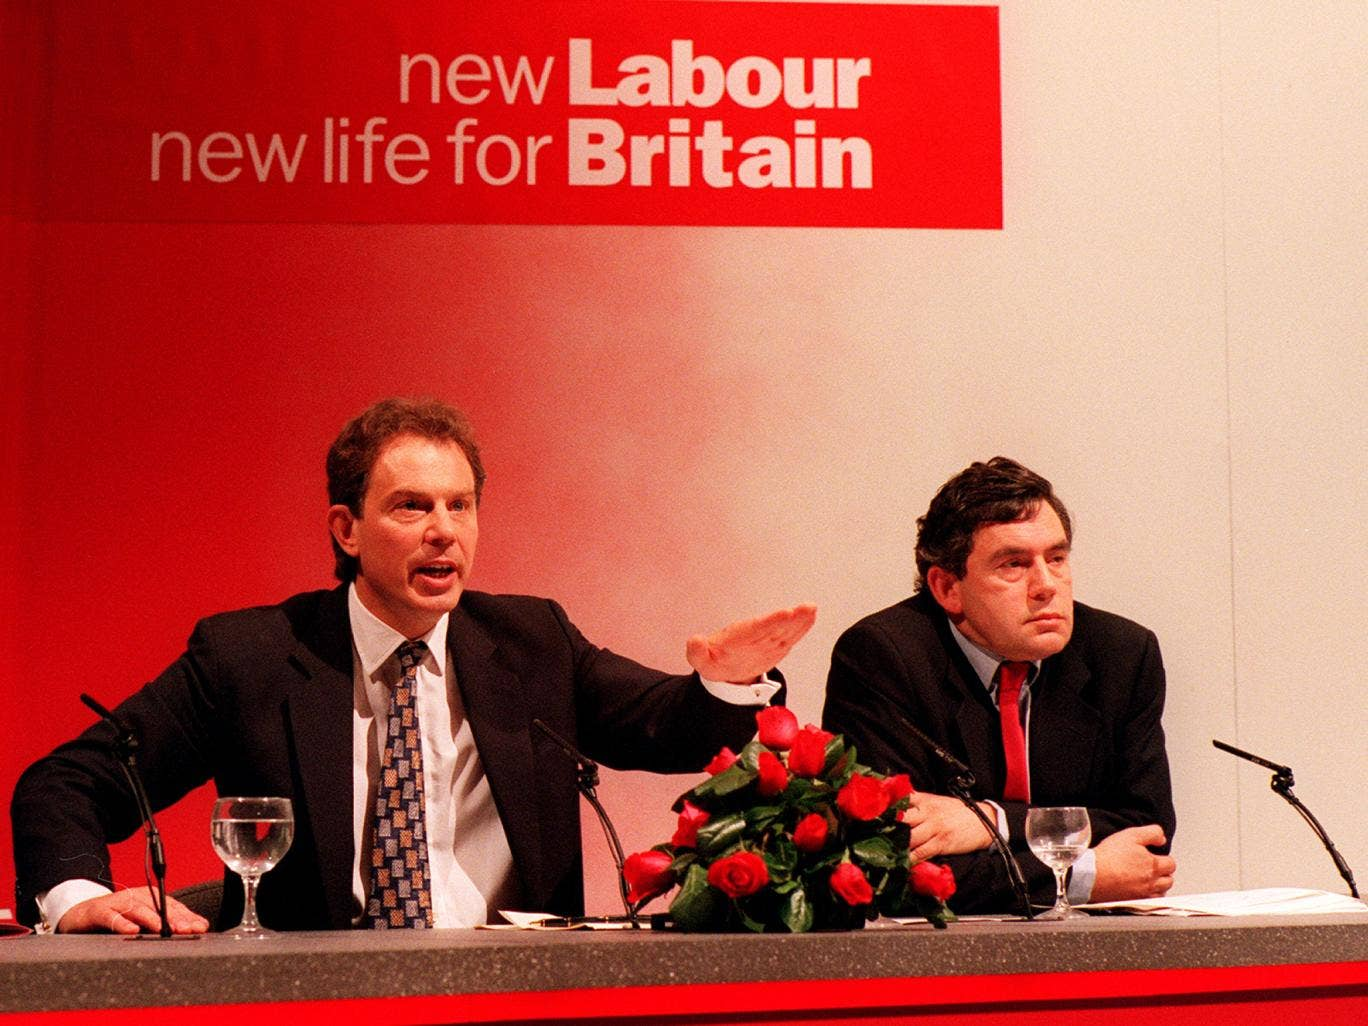 Tony Blair and Gordon at New Labour's party conference in 1996